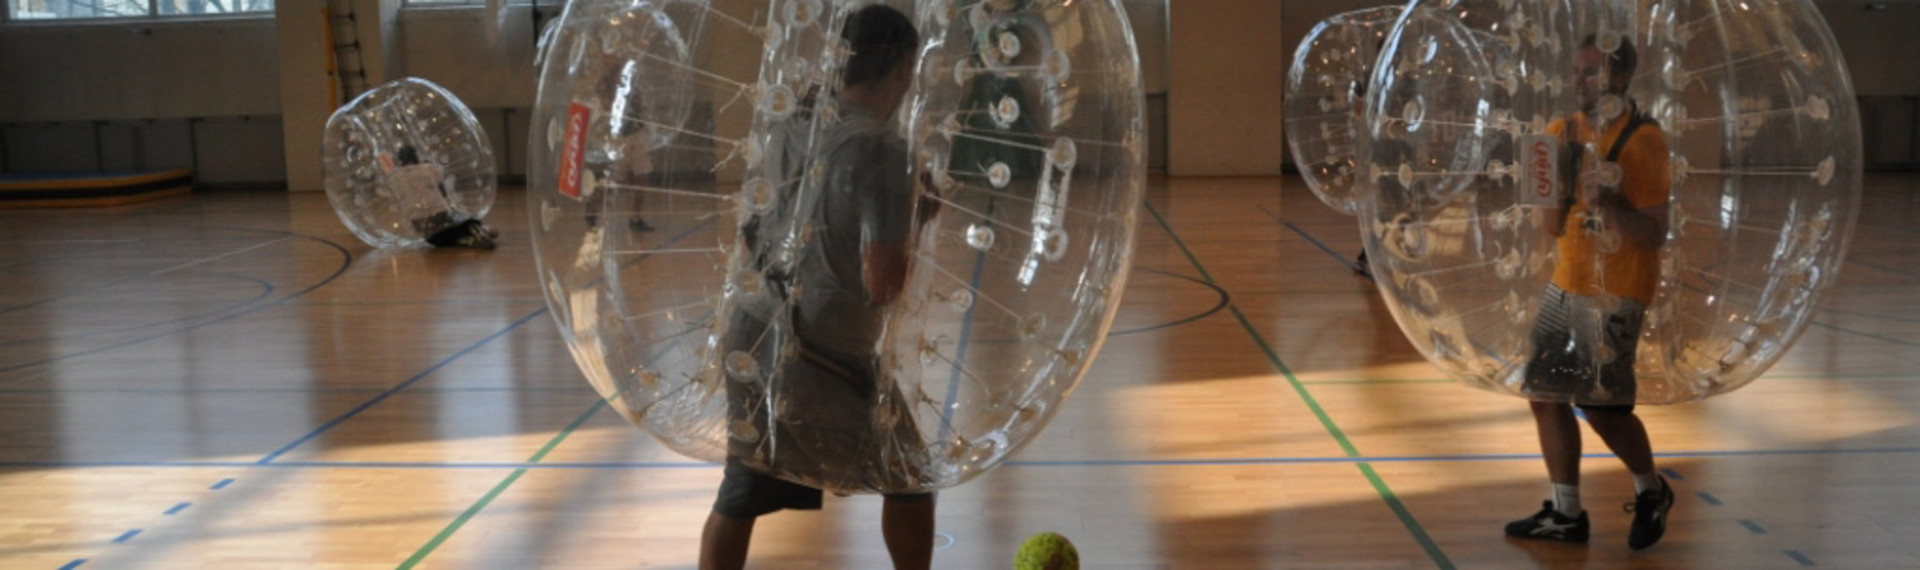 Warsaw Bubble Football image